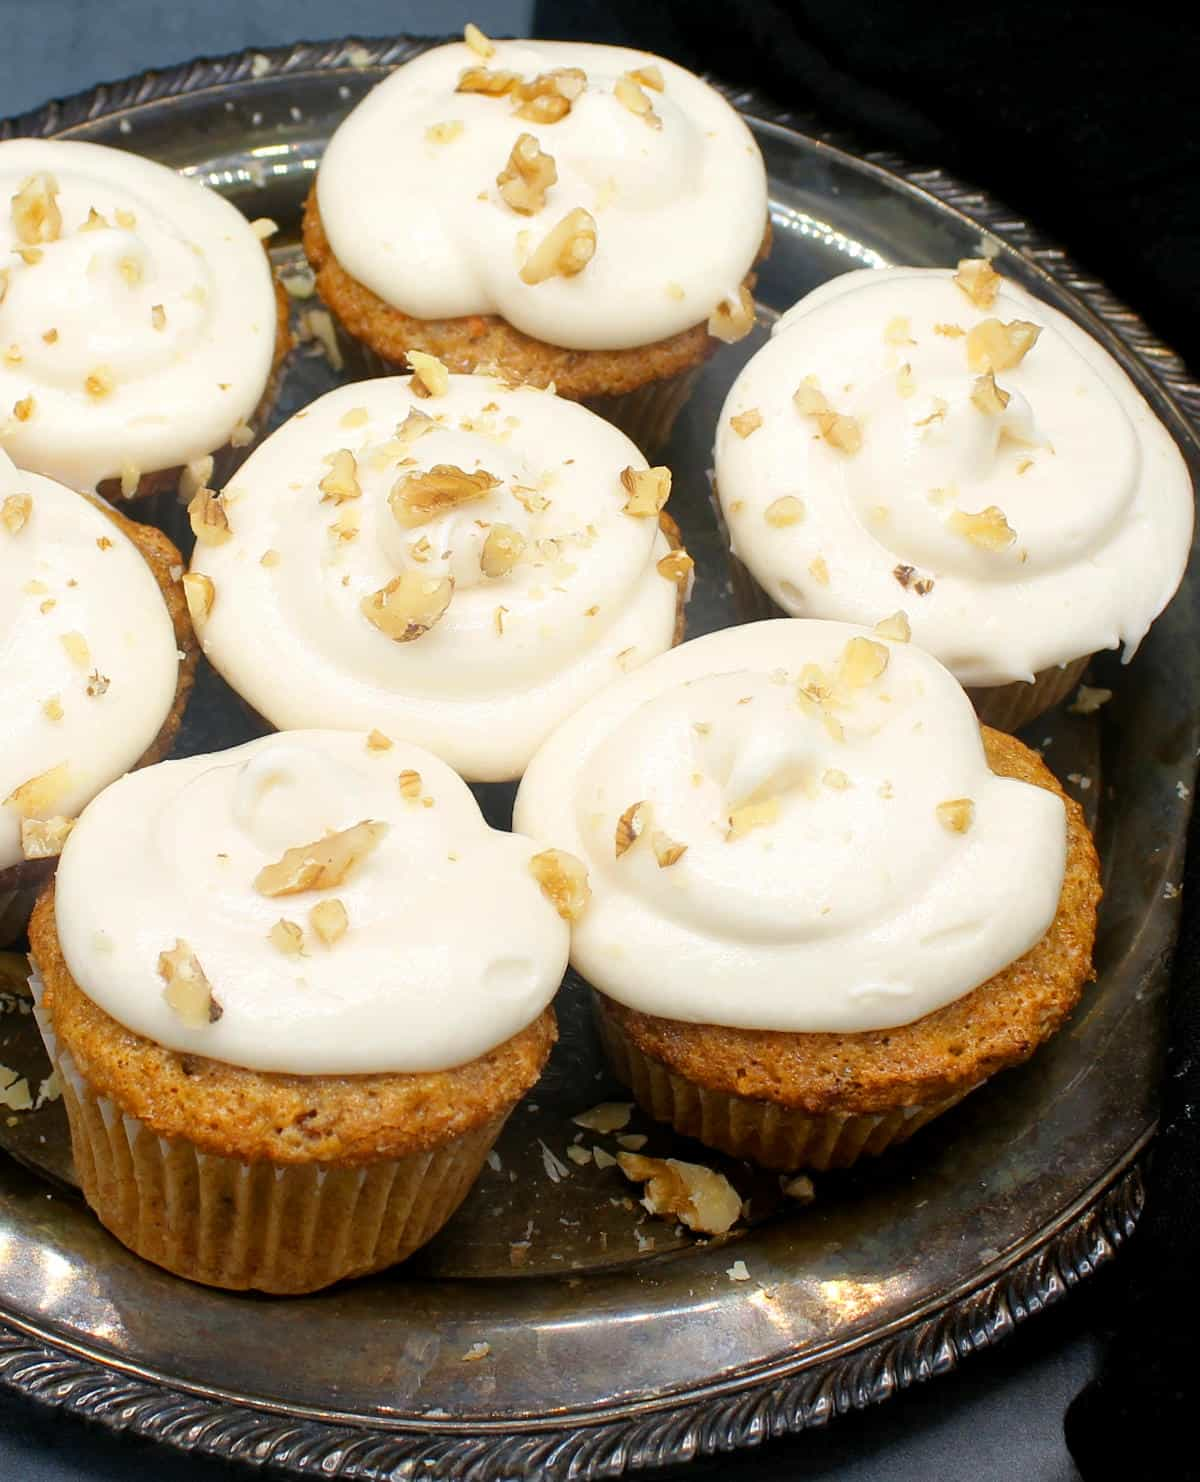 Vegan carrot cupcakes with cream cheese frosting on a silver plate with walnuts scattered on top.